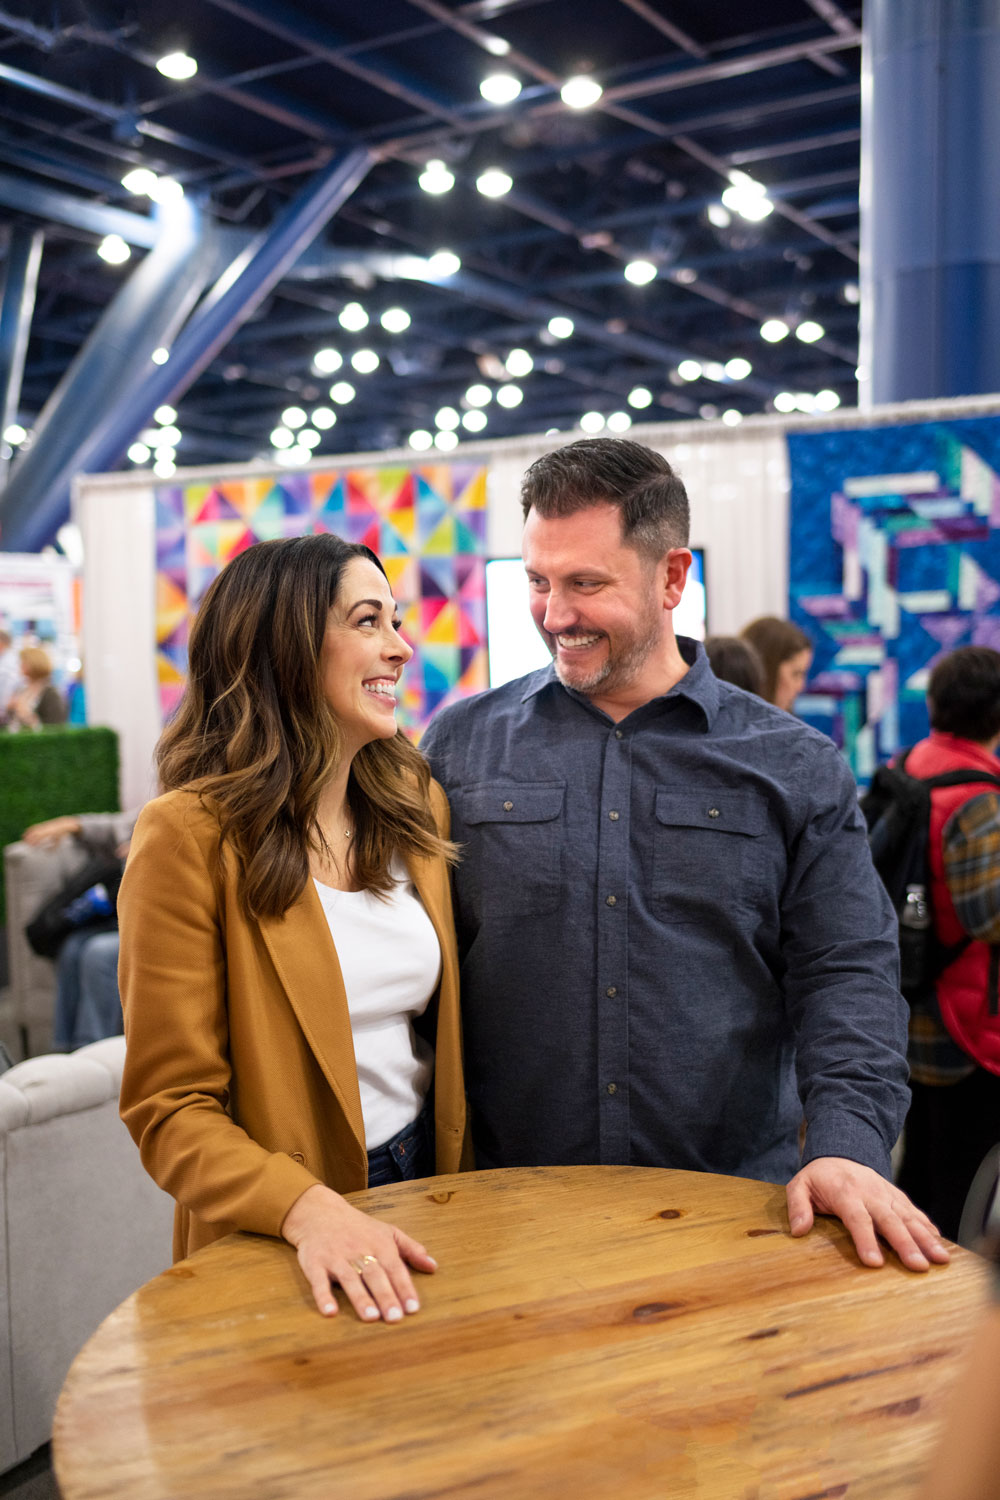 Get the inside scoop on the Houston Quilt Festival through interviews with leaders, crafters and teachers in our quilting community. In this episode I chat with Mister Domestic | suzyquilts.com